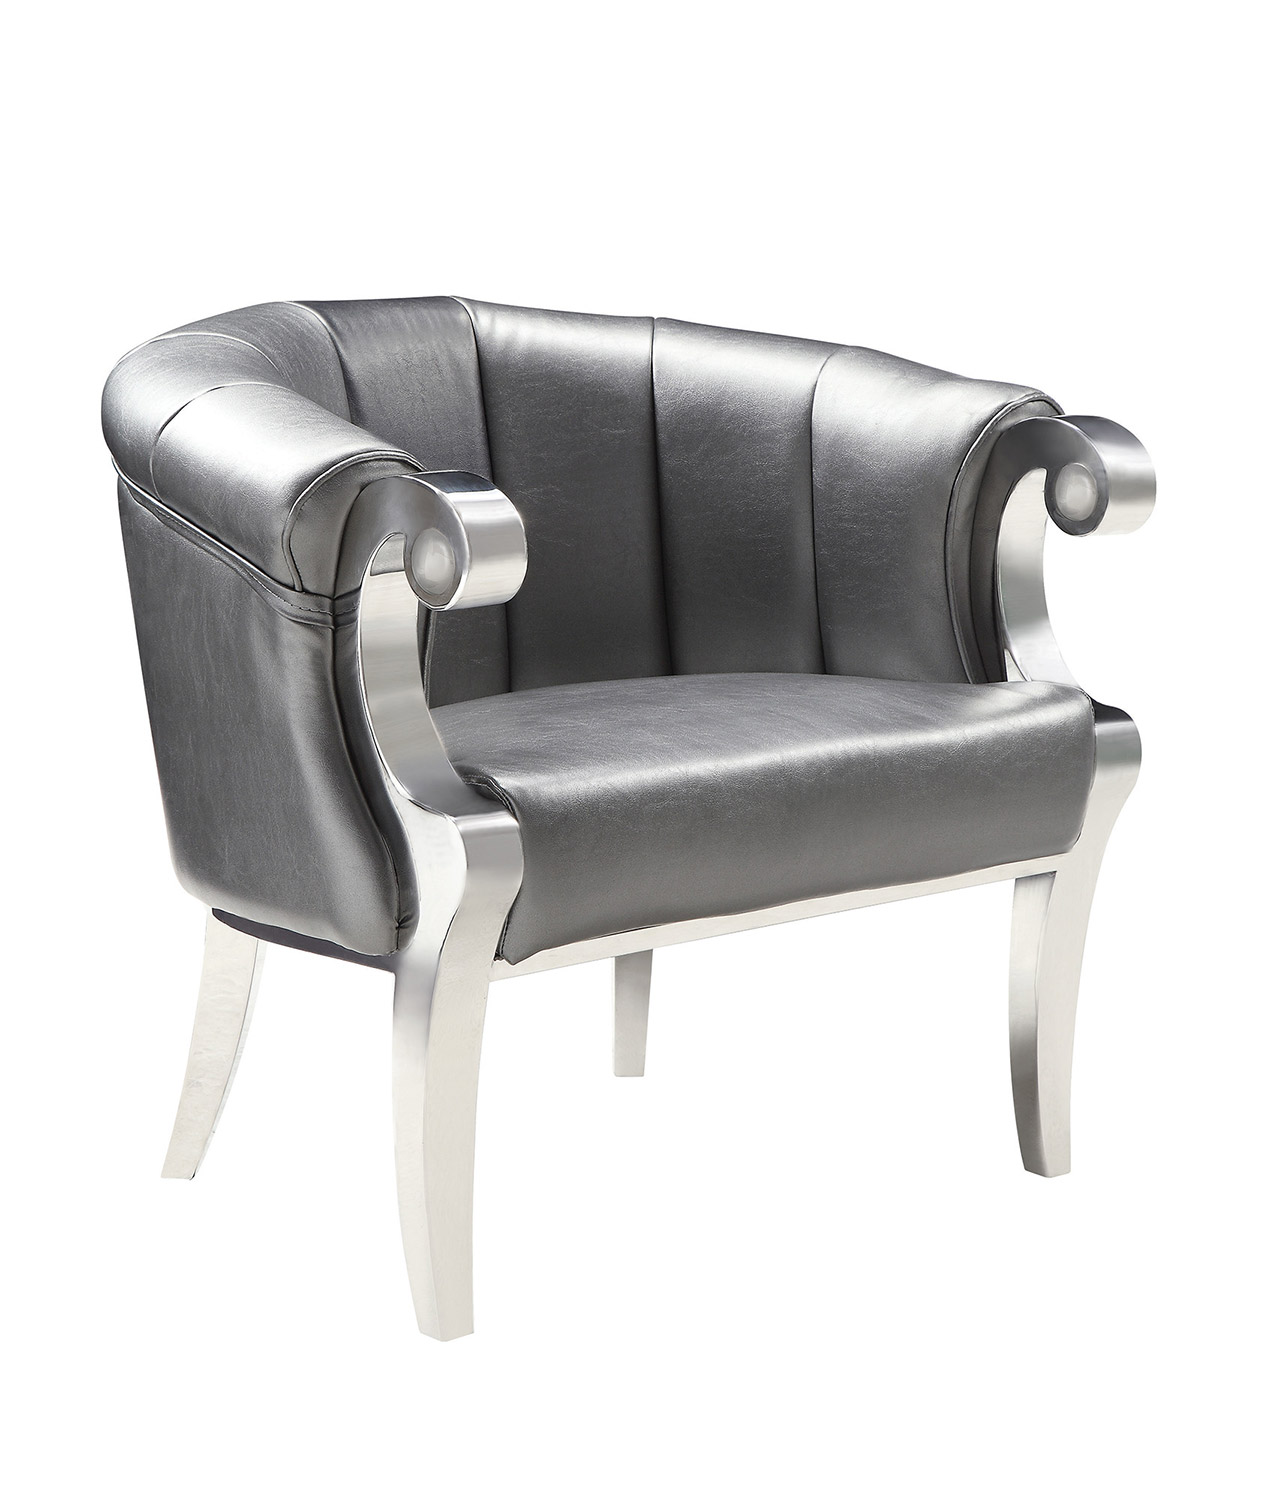 Coaster 903384 Accent Chair - Grey/Chrome